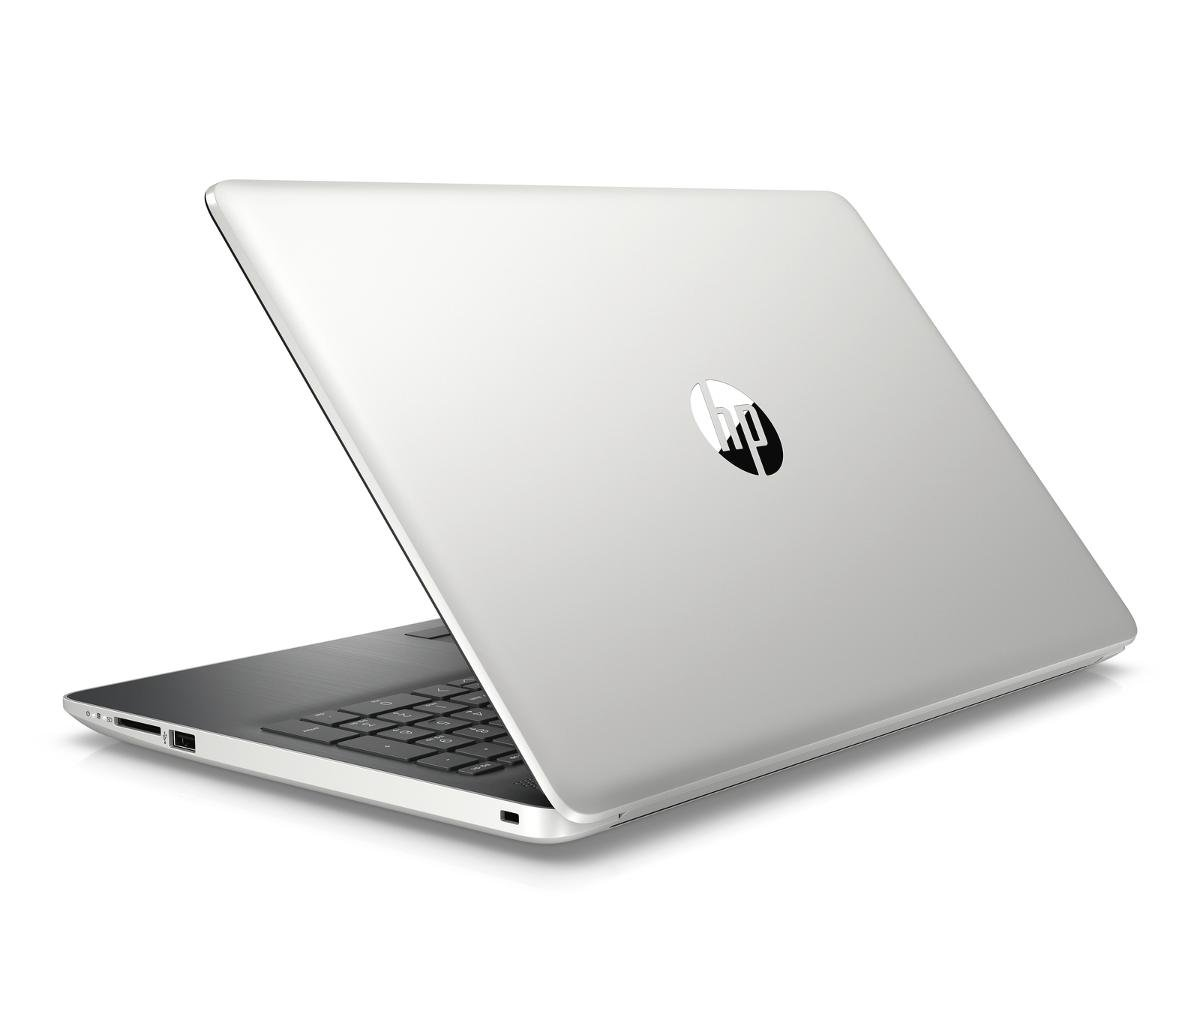 "Laptop HP 15-da0061nw 6AS56EA, i3-7020U, 4 GB RAM, 15.6"", 1 TB, FreeDOS 2.0"